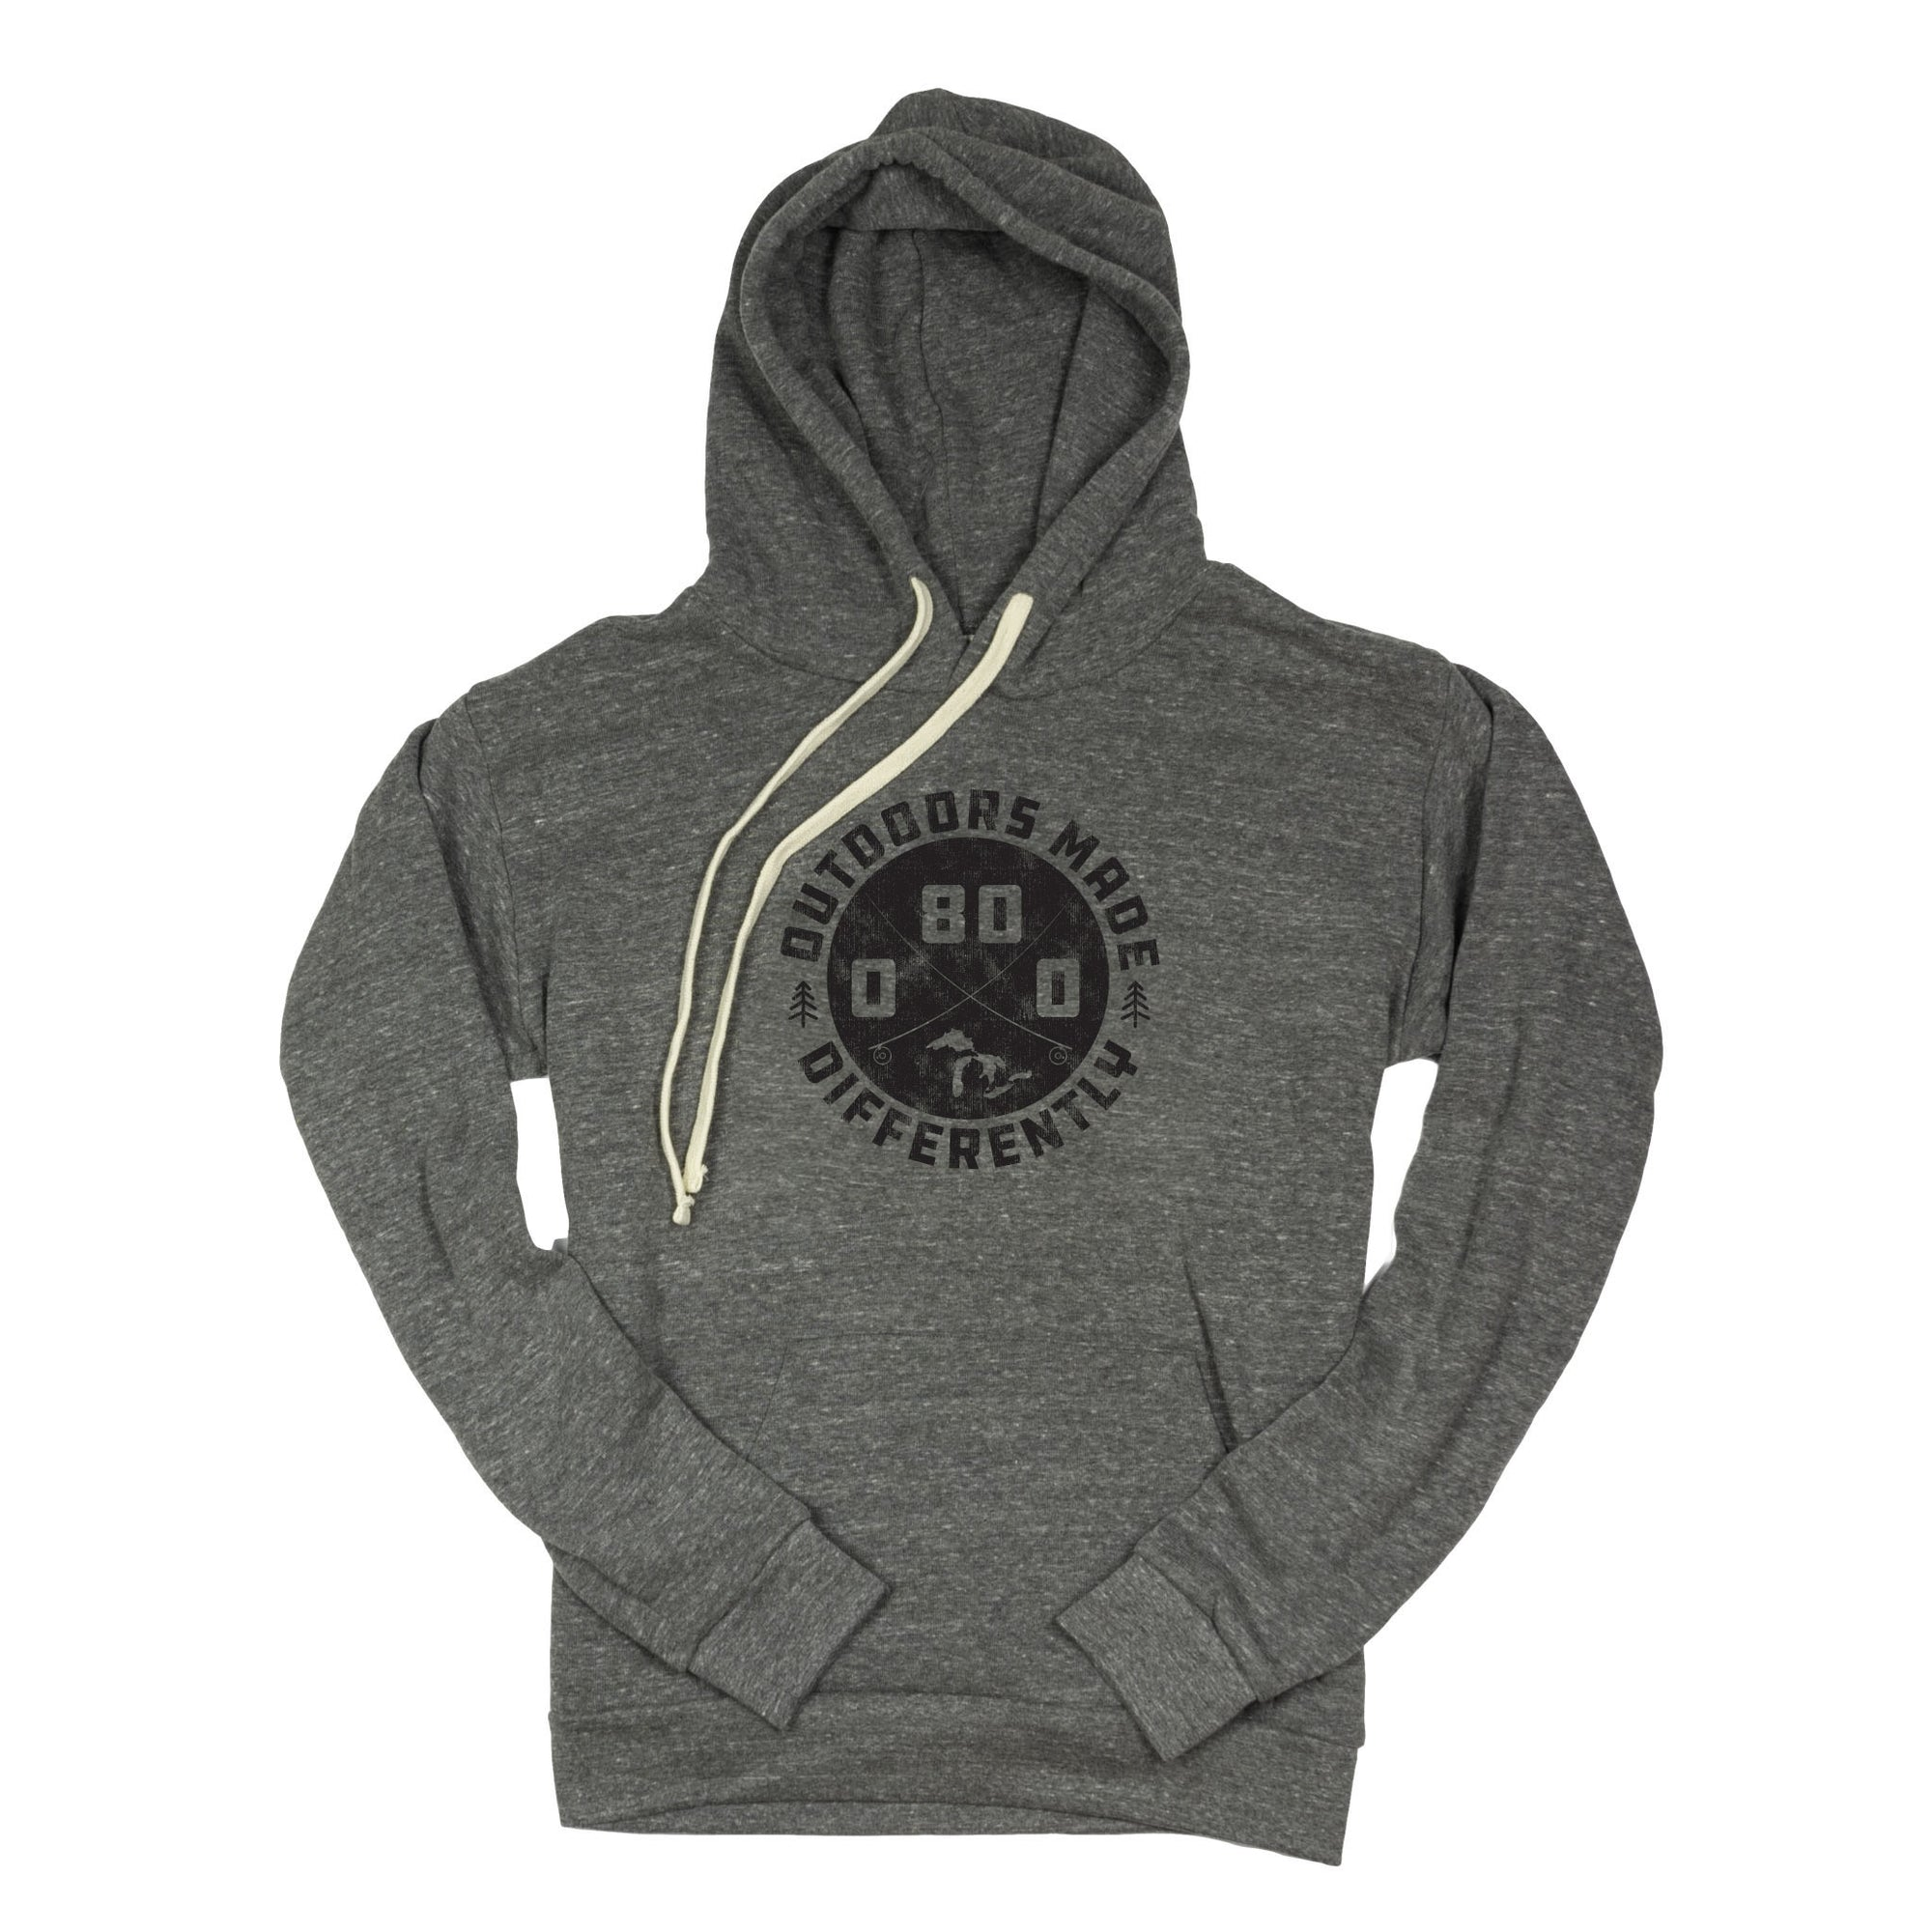 Men's Outdoors Made Differently Triblend Pullover Hoodie